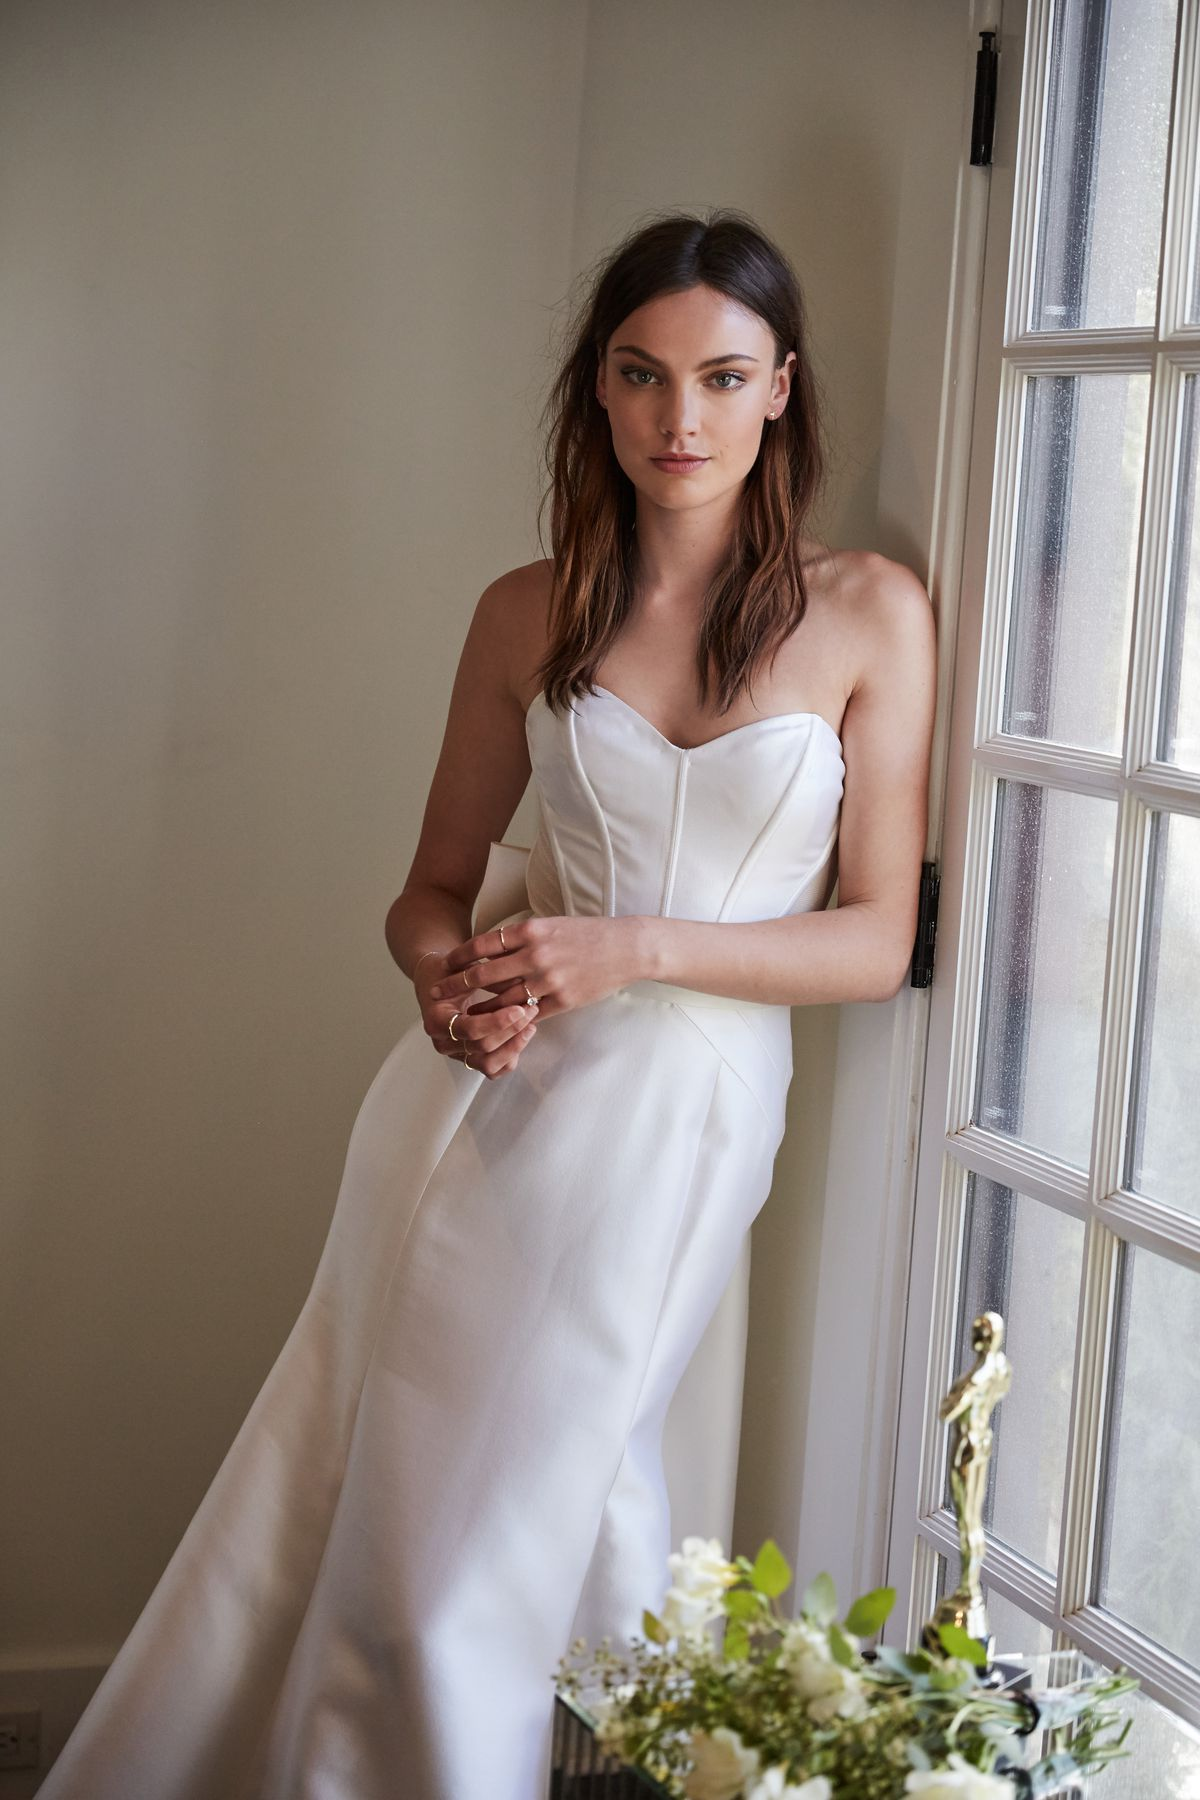 Woman wearing white strapless wedding gown.